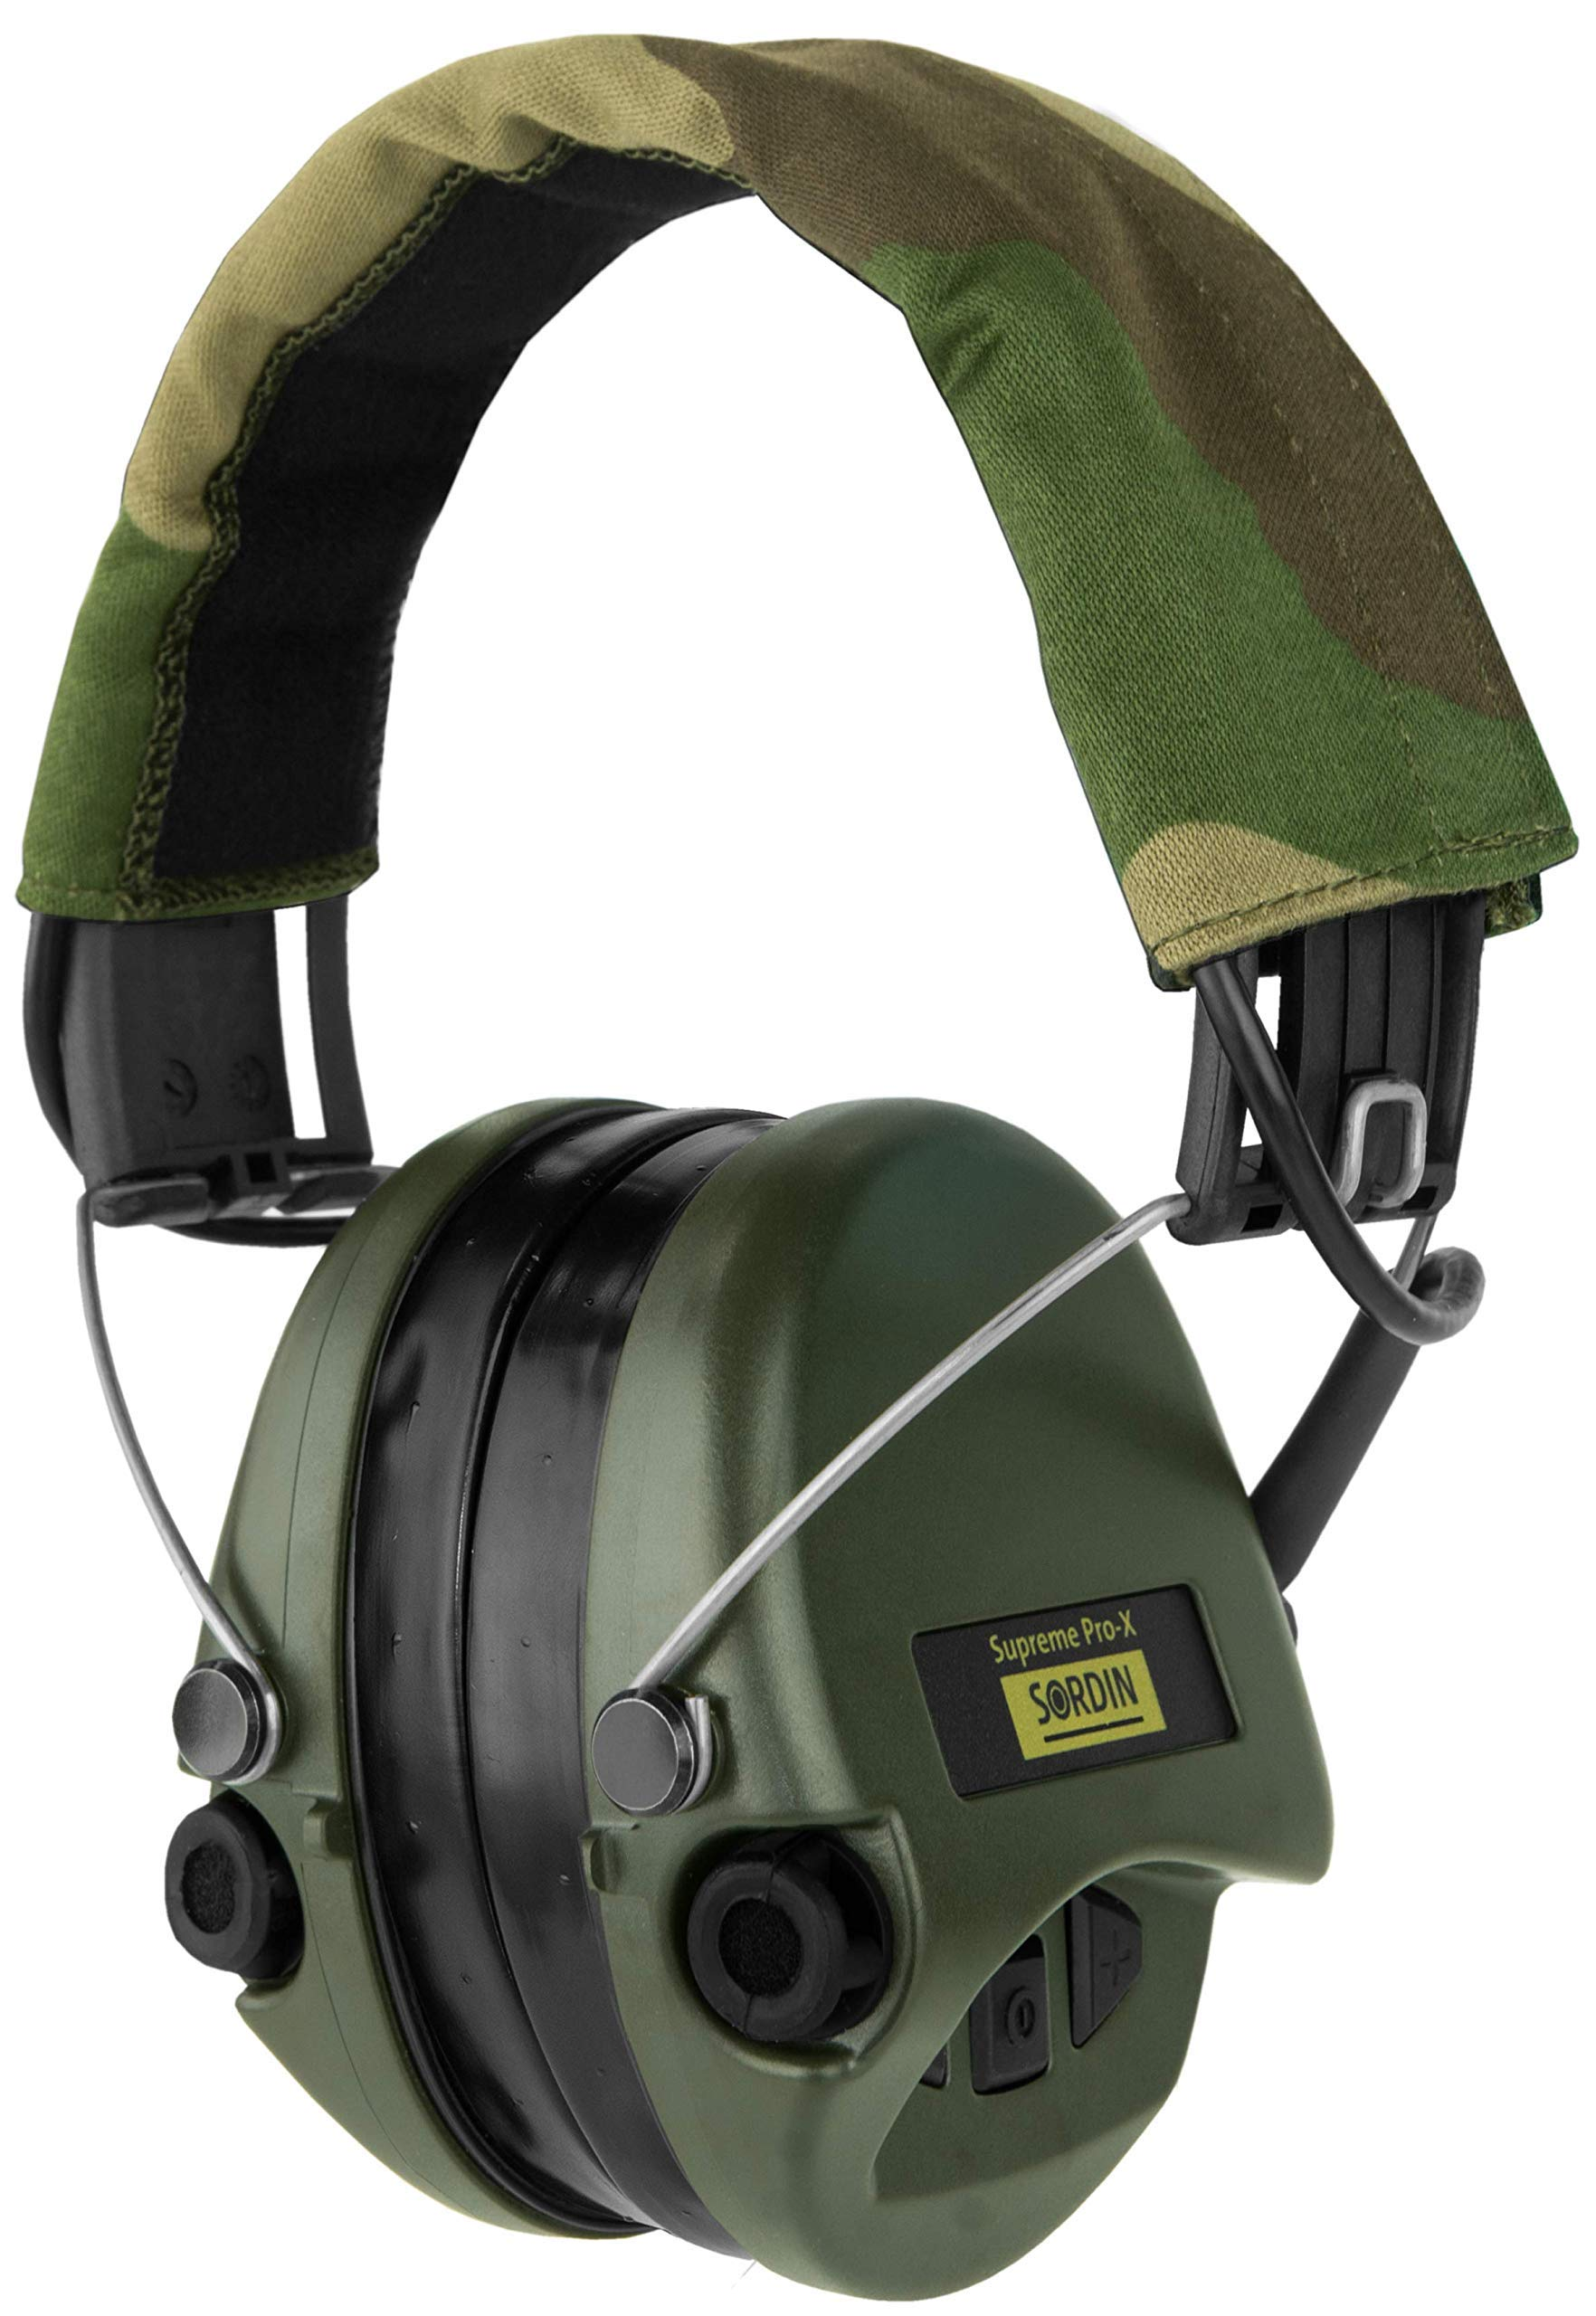 Sordin Supreme PRO X SOR75302-X-G-S - Active Adjustable Ear Muffs - Hearing Protection - Gel Seals - Camo Canvas Headband and Green Cups by Sordin